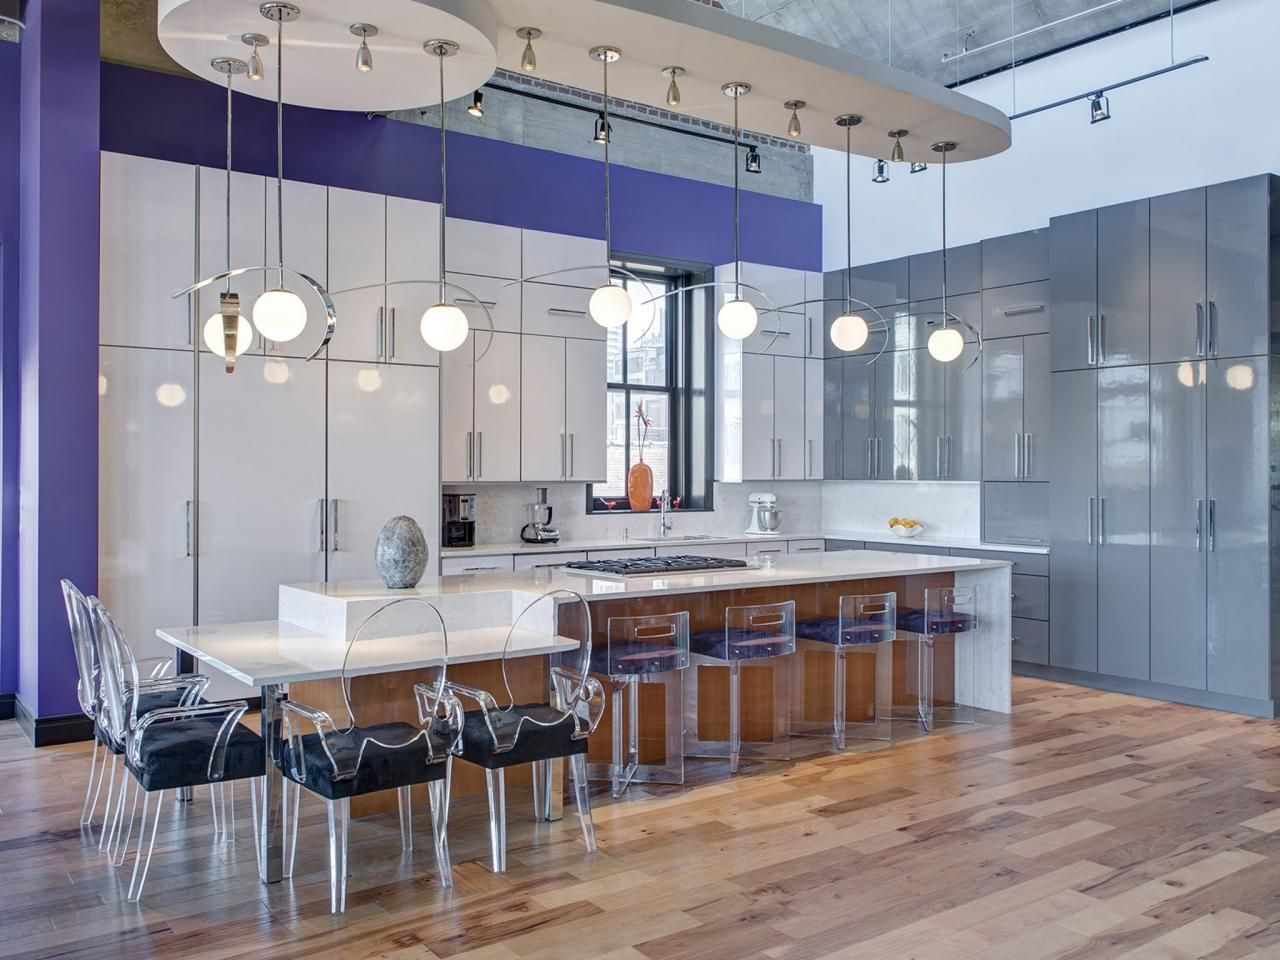 This Oversized Kitchen Island Provides Plenty Of Seating At The Eat In Counter And Additional